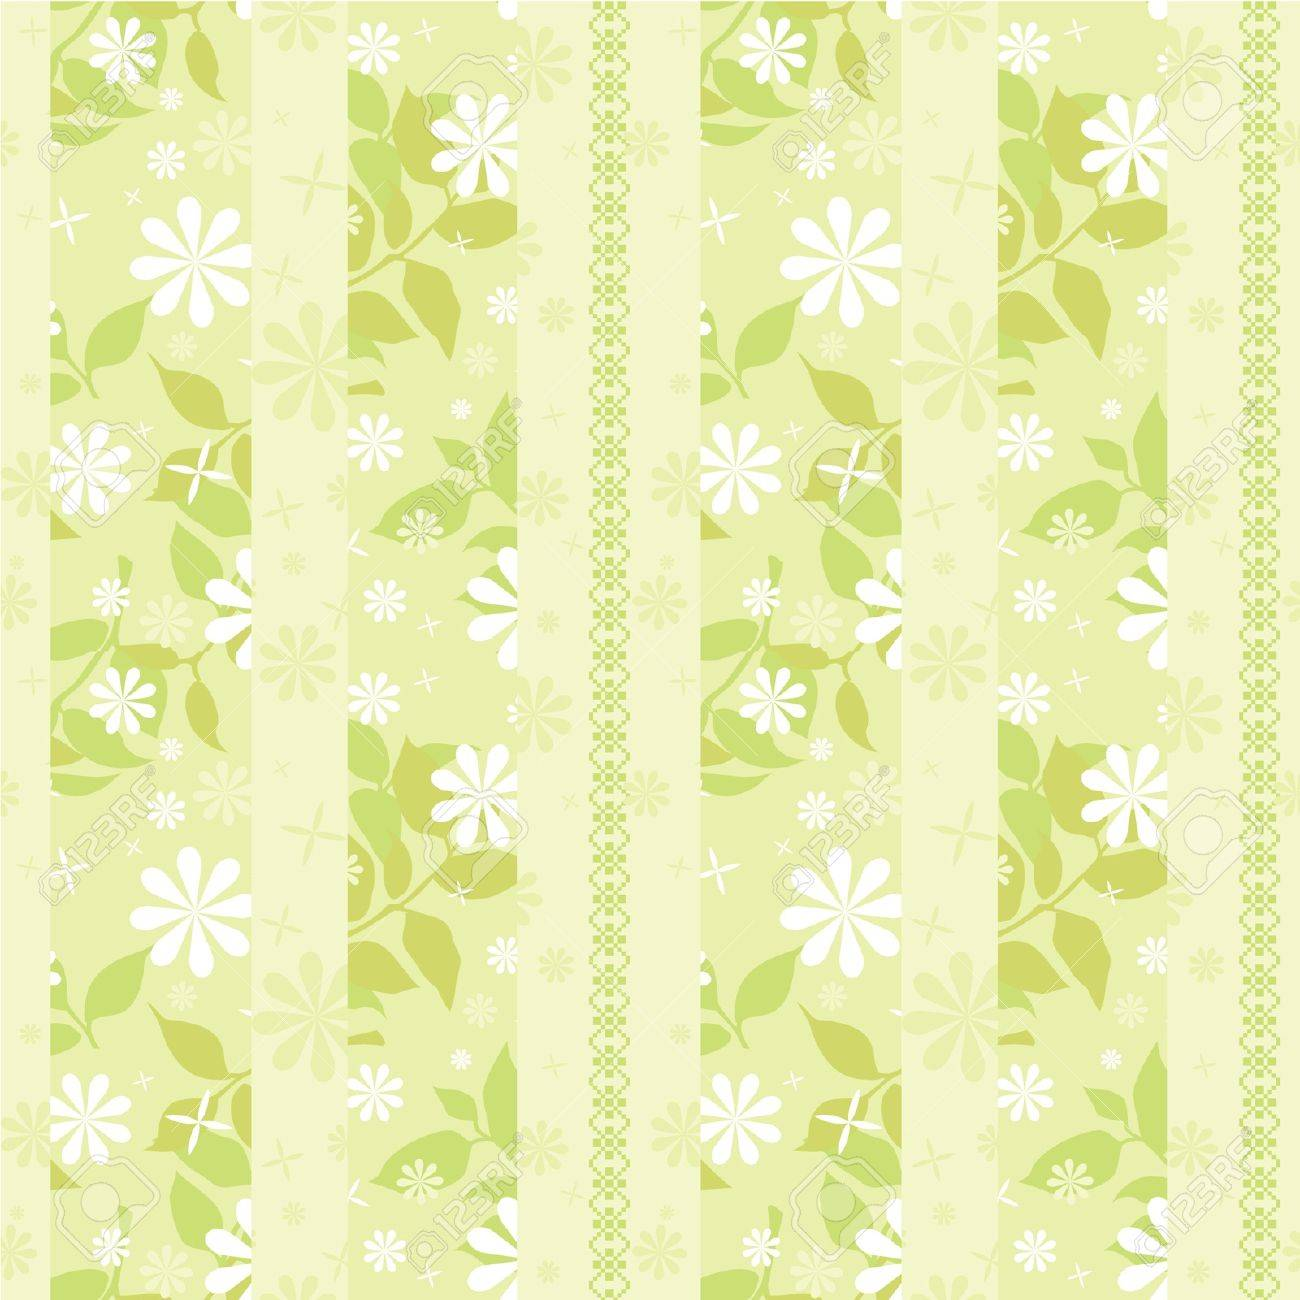 Light Green Striped Wallpaper With Flowers And Decorative Ornament Stock Vector